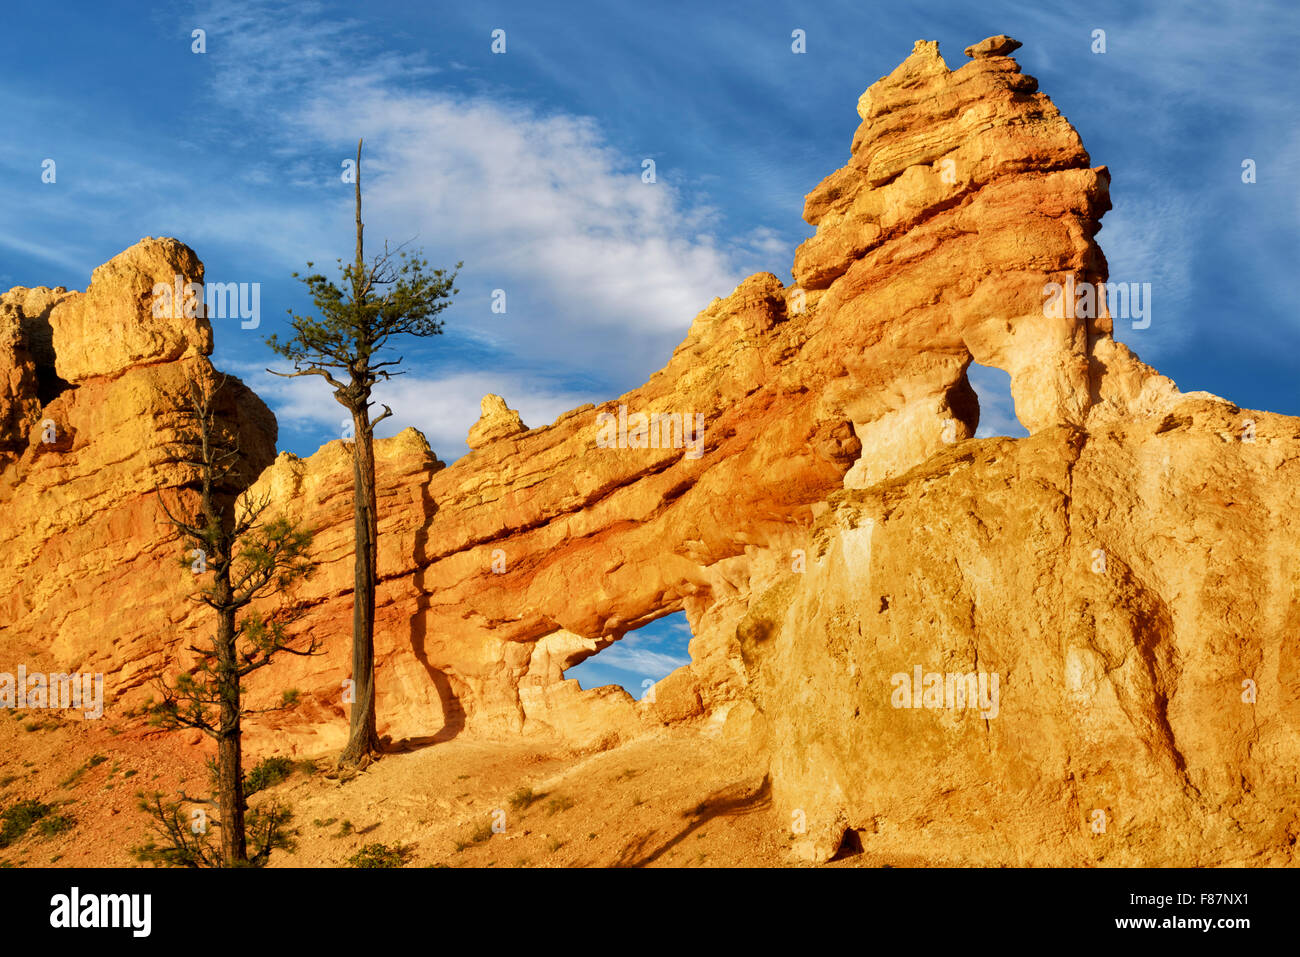 Rock Arches with trees. Bryce National Park, Utah - Stock Image